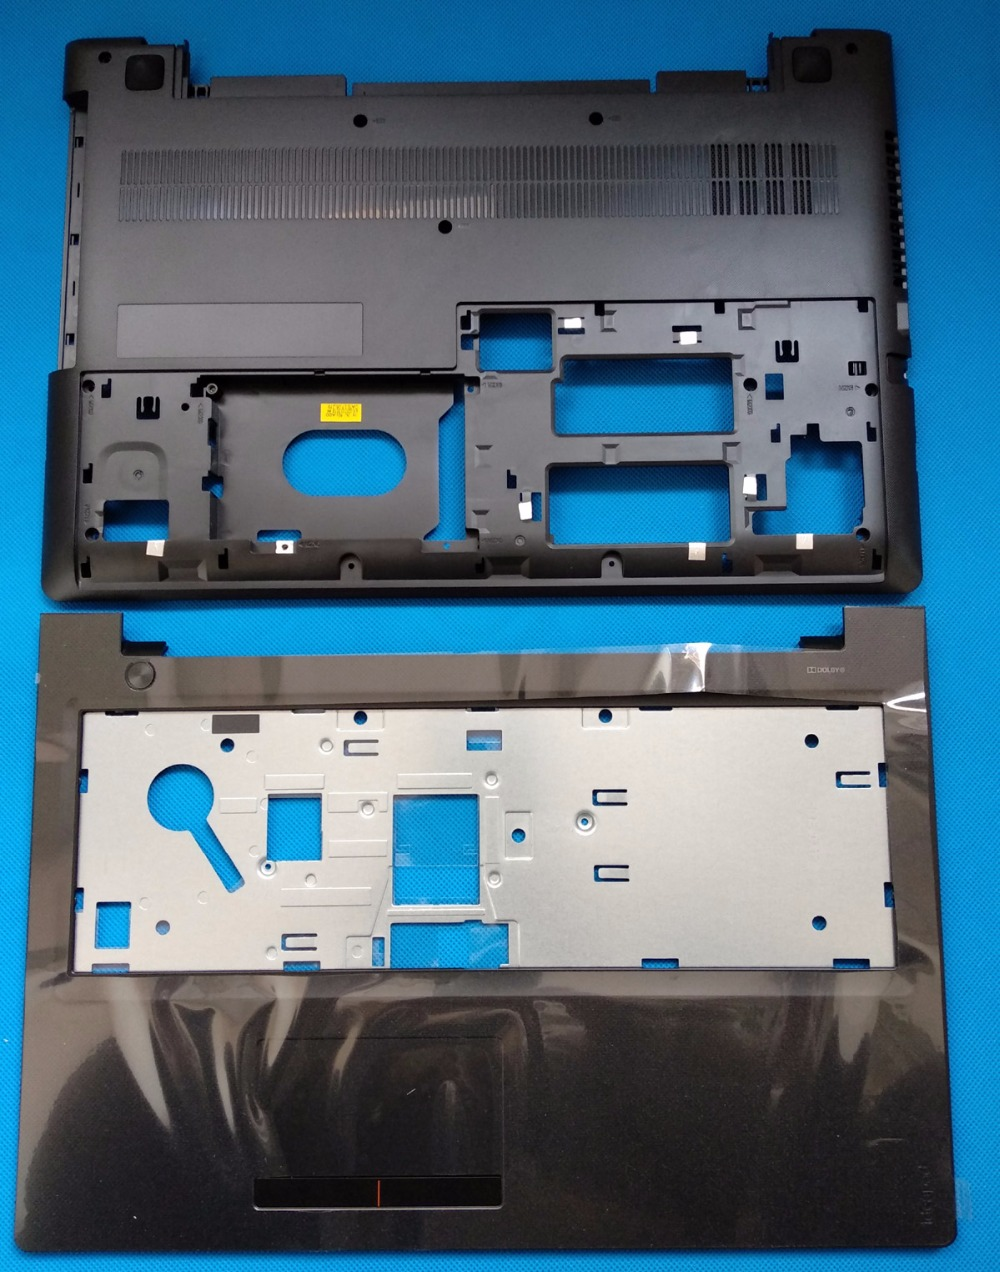 New Original Lenovo Ideapad 300-15 300-15ISK Bottom Base Case Cover & Palmrest top case Upper Case With Touchpad Board brand new laptop for dell inspiron 15 15r 5521 5537 3537 3521 lcd back cover upper cover bezel case palmrest cover bottom case